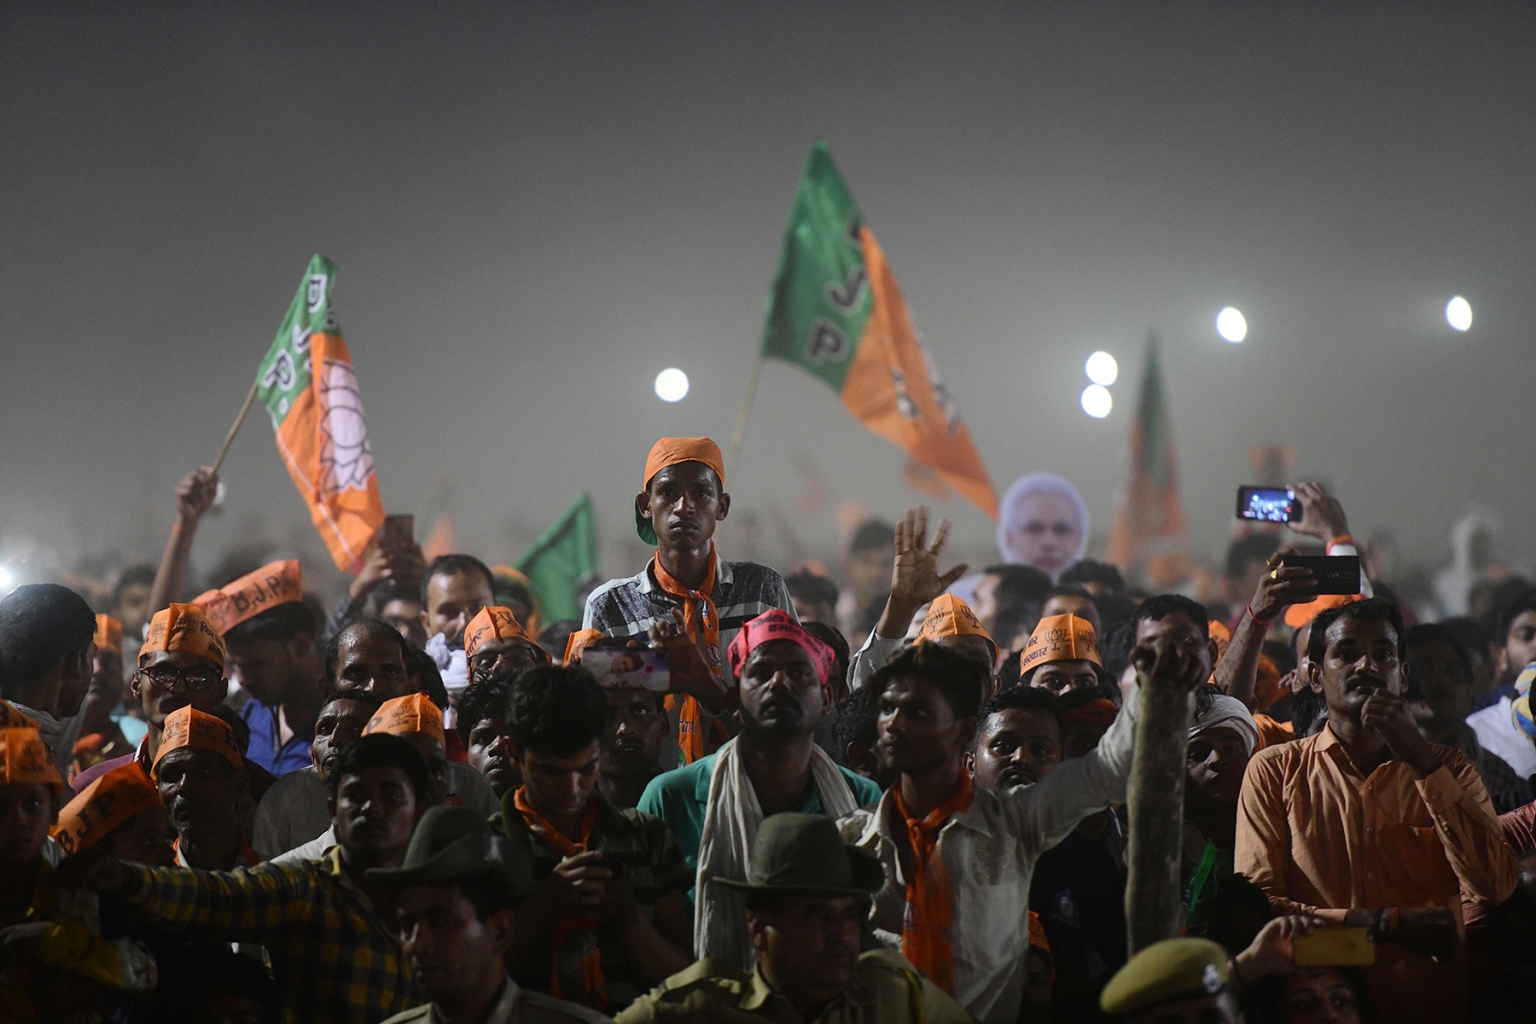 Bharatiya Janata Party supporters attend a rally as Indian Prime Minister Narendra Modi delivers a speech ahead of Phase VI of India's general election in Allahabad on May 9. SANJAY KANOJIA/AFP/Getty Images